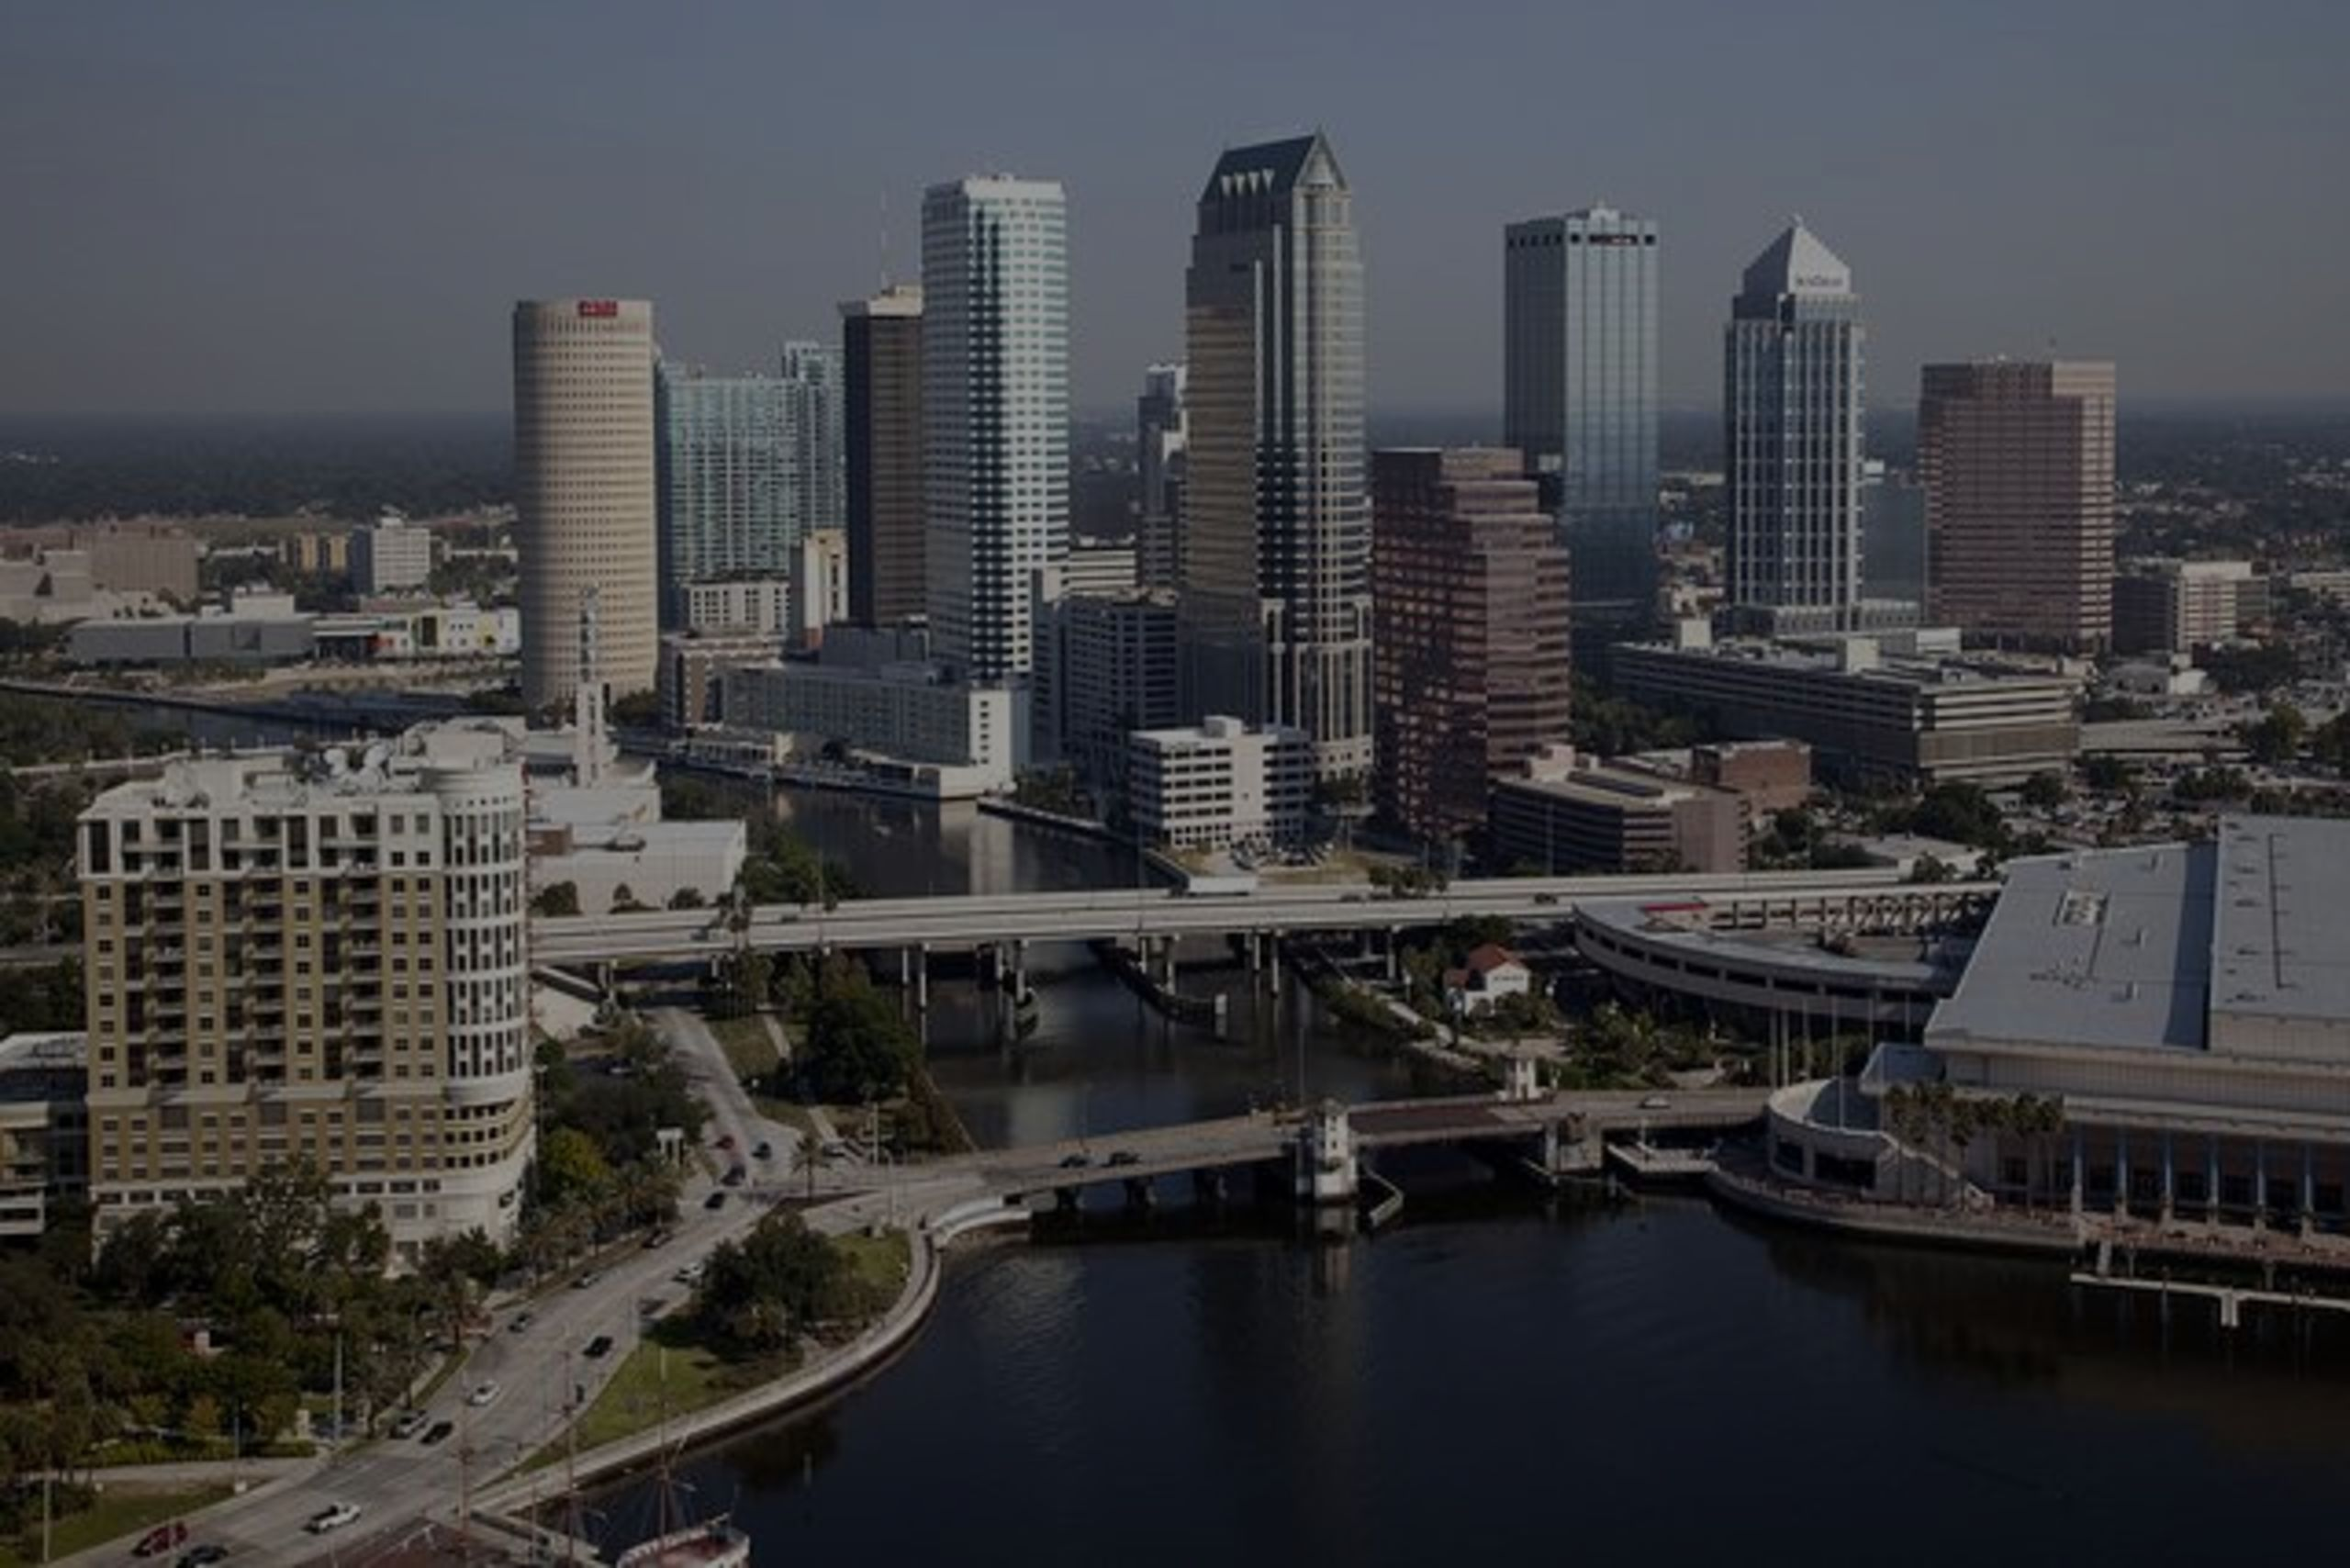 Press Release: The Property Pros Real Estate expands to Tampa, Fl. market